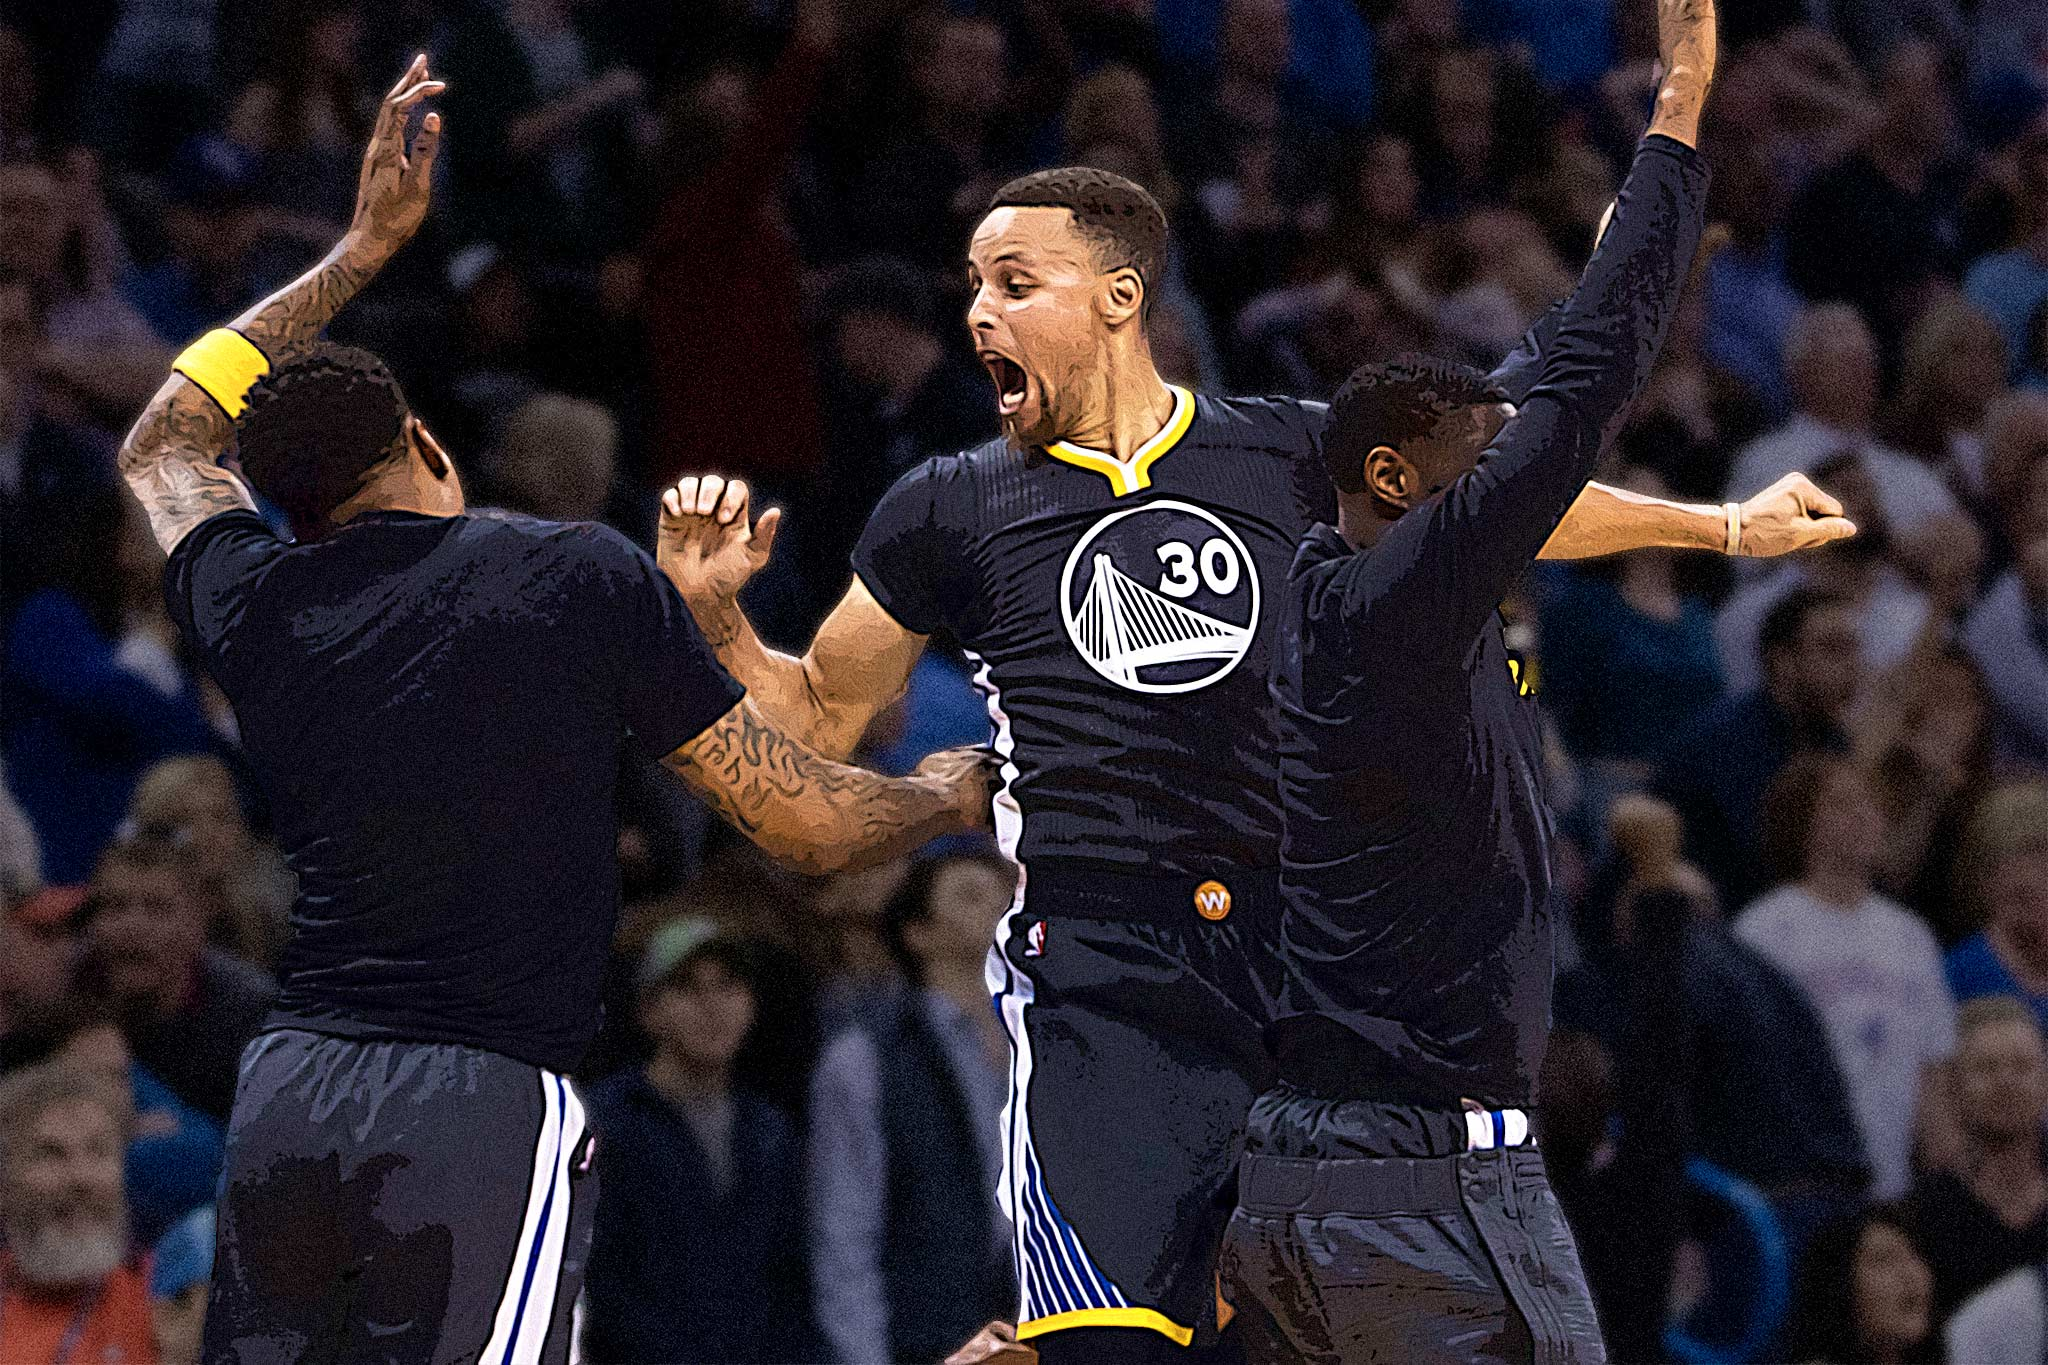 Why this game is still Steph Curry's best by a long shot (for now)